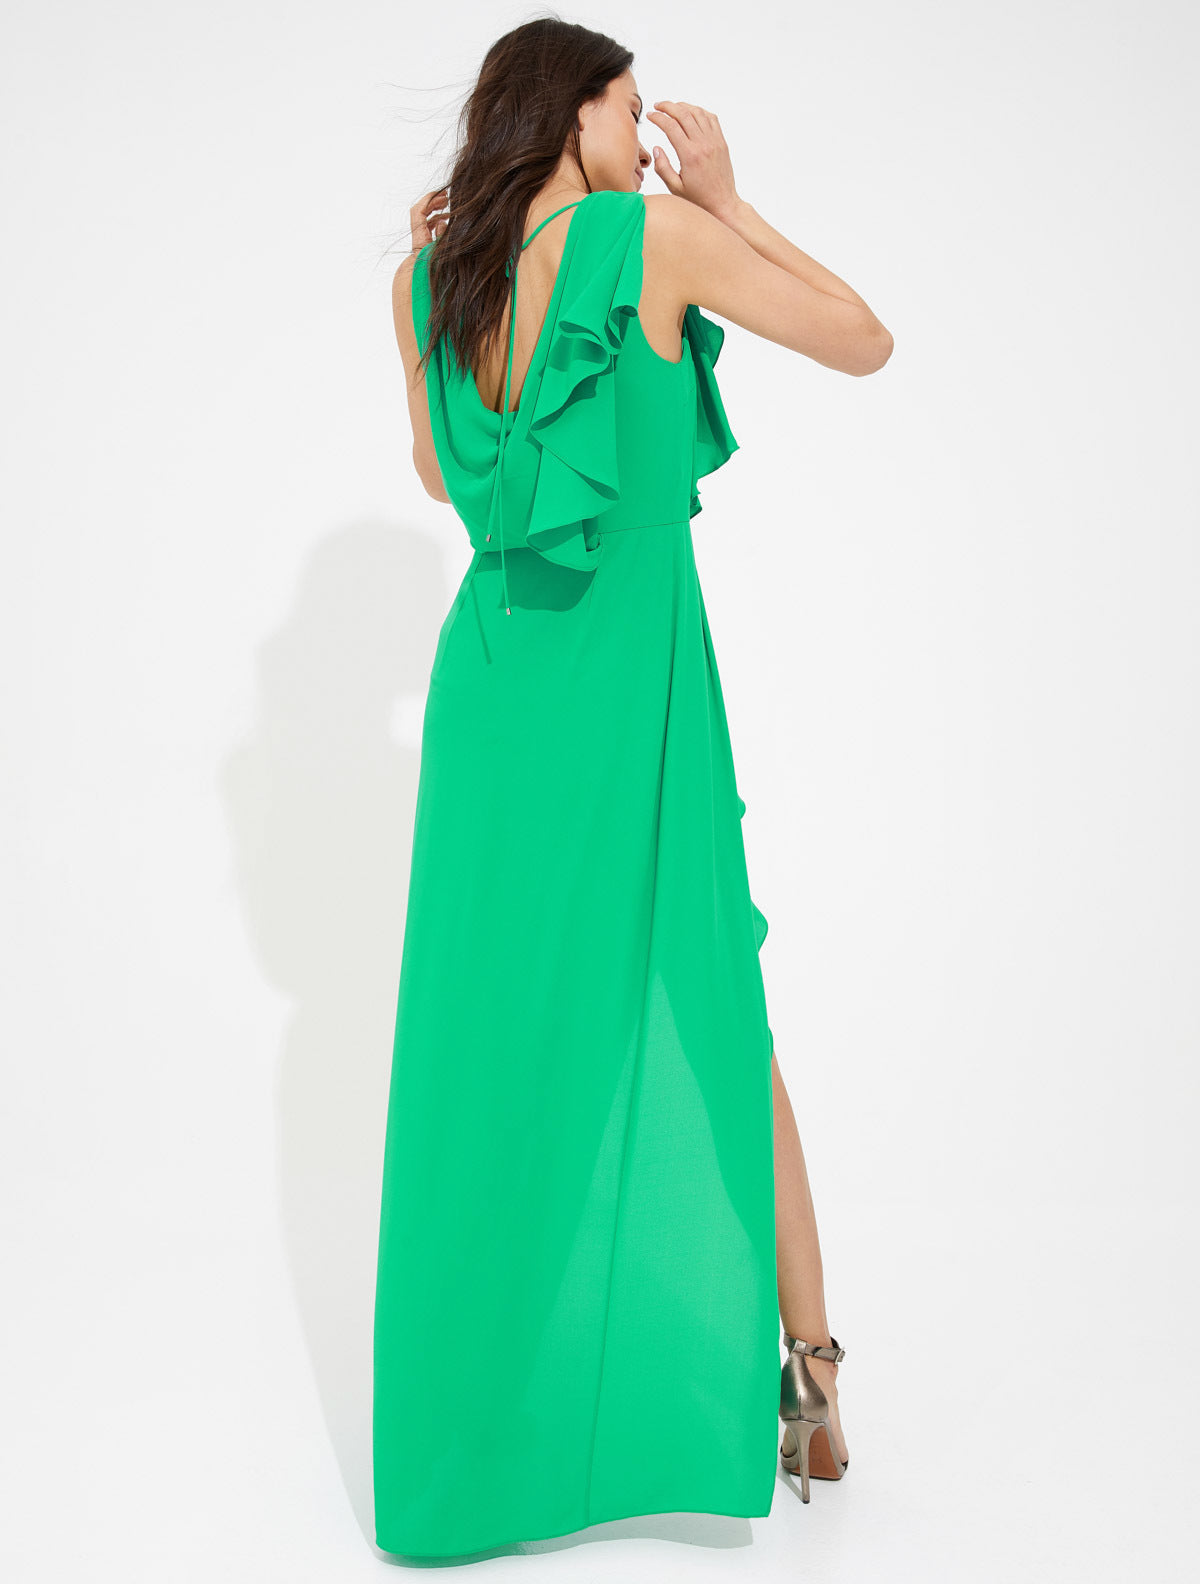 Draped silky georgette gown - Halston